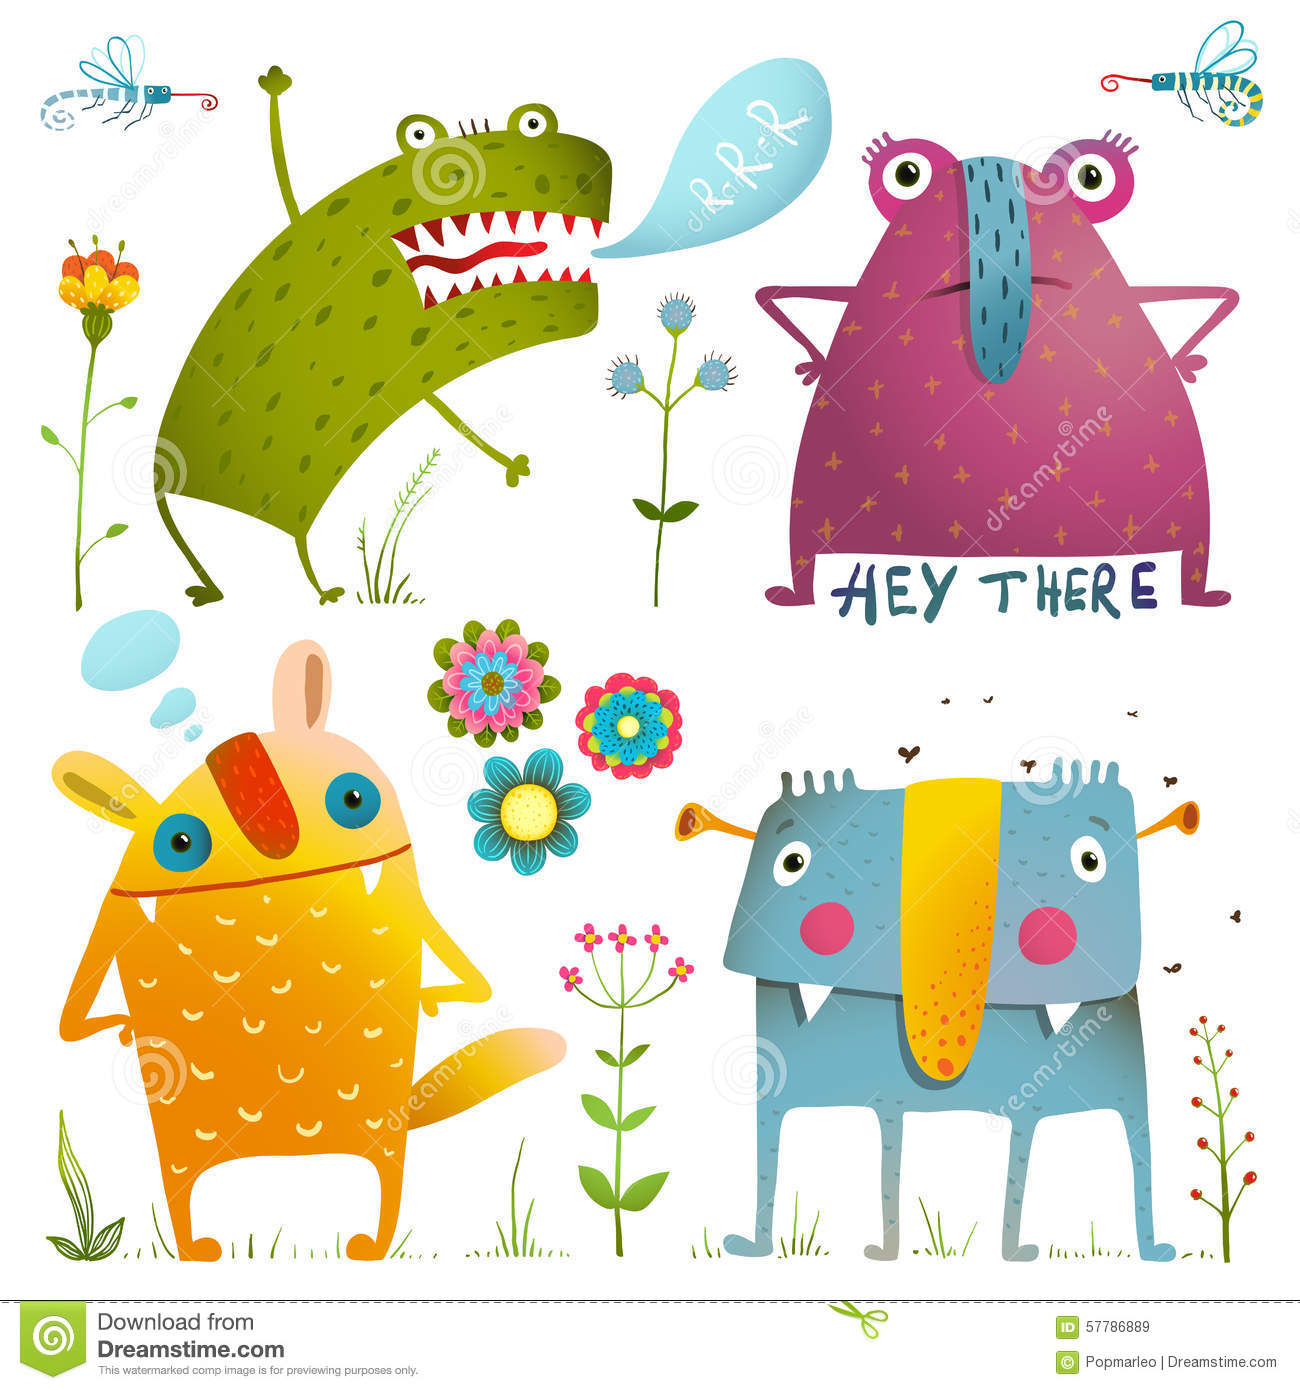 Fun Cute Little Monsters For Kids Design Colorful Stock